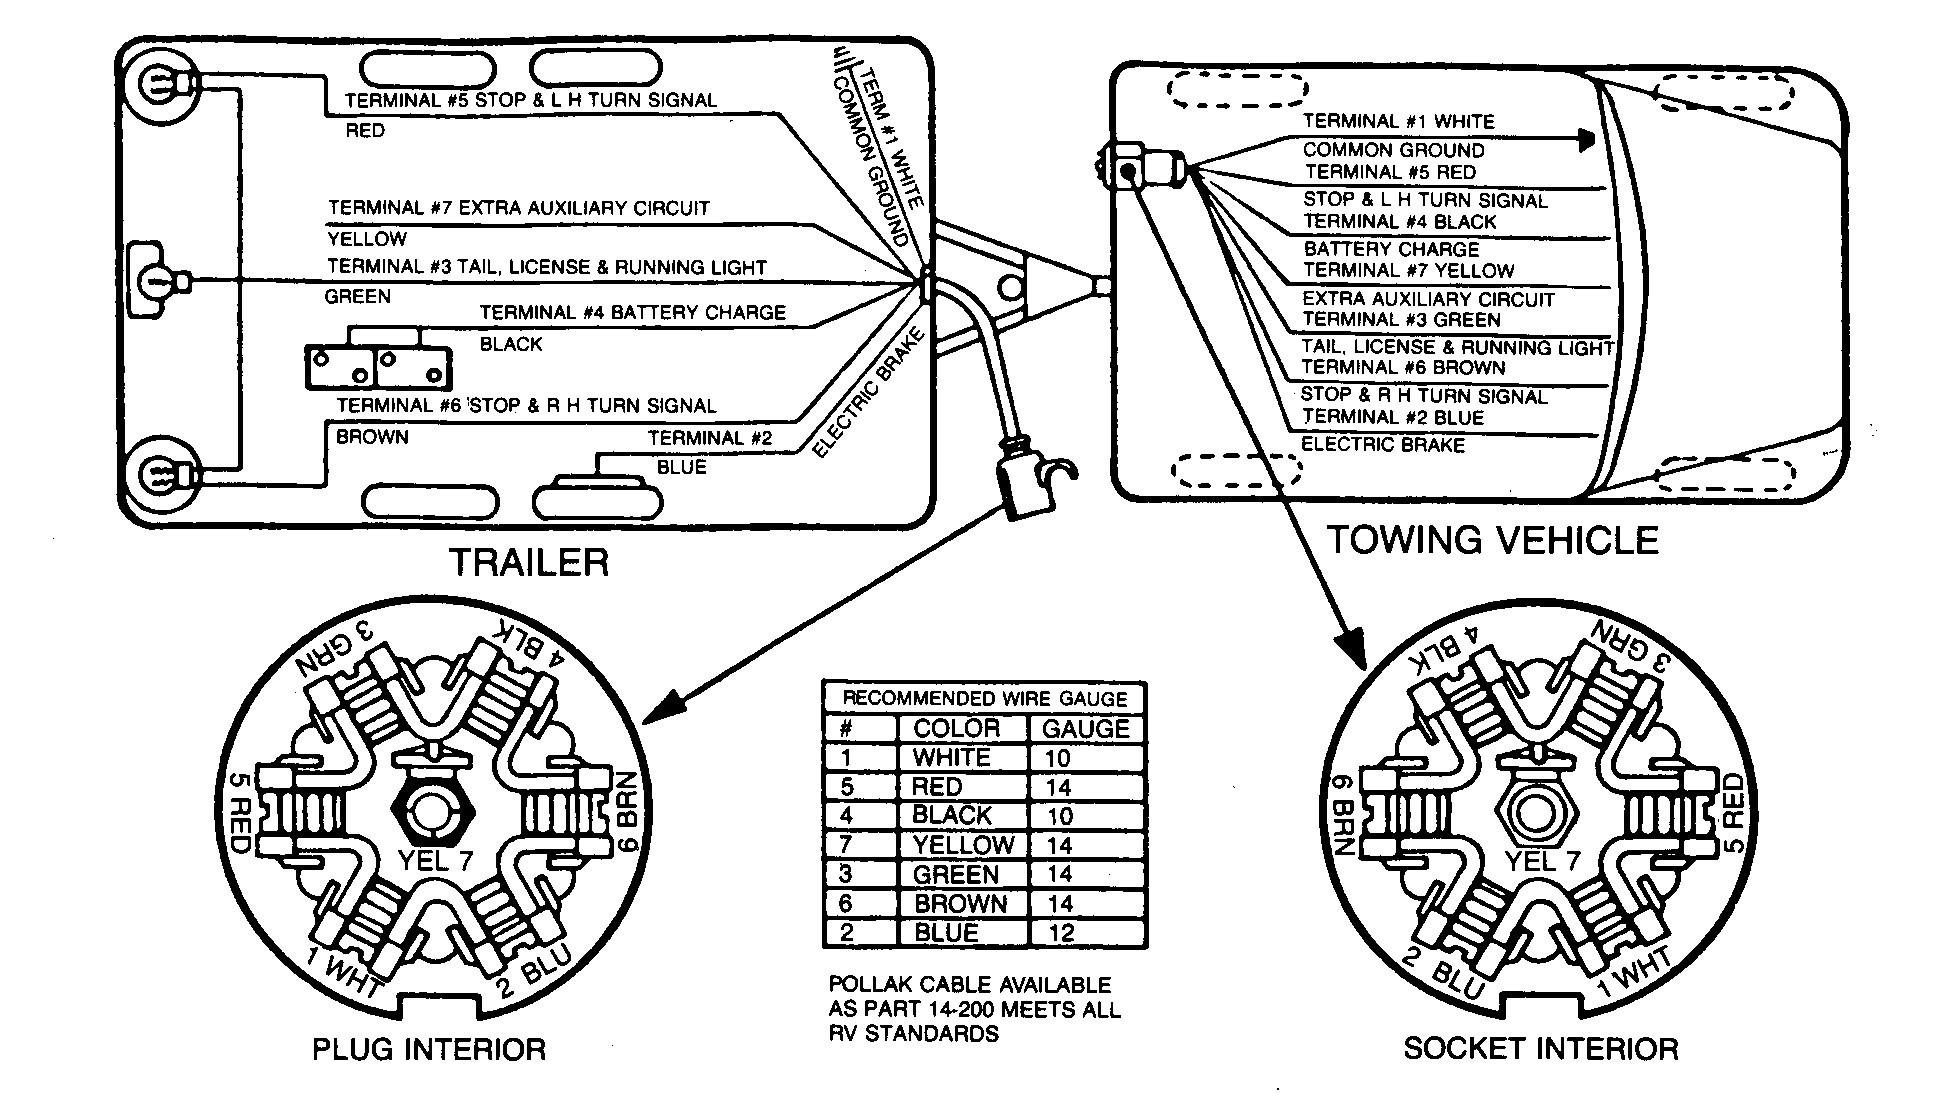 Wondrous 7 Way Trailer Brake Wiring Diagram Basic Electronics Wiring Diagram Wiring Cloud Rdonaheevemohammedshrineorg